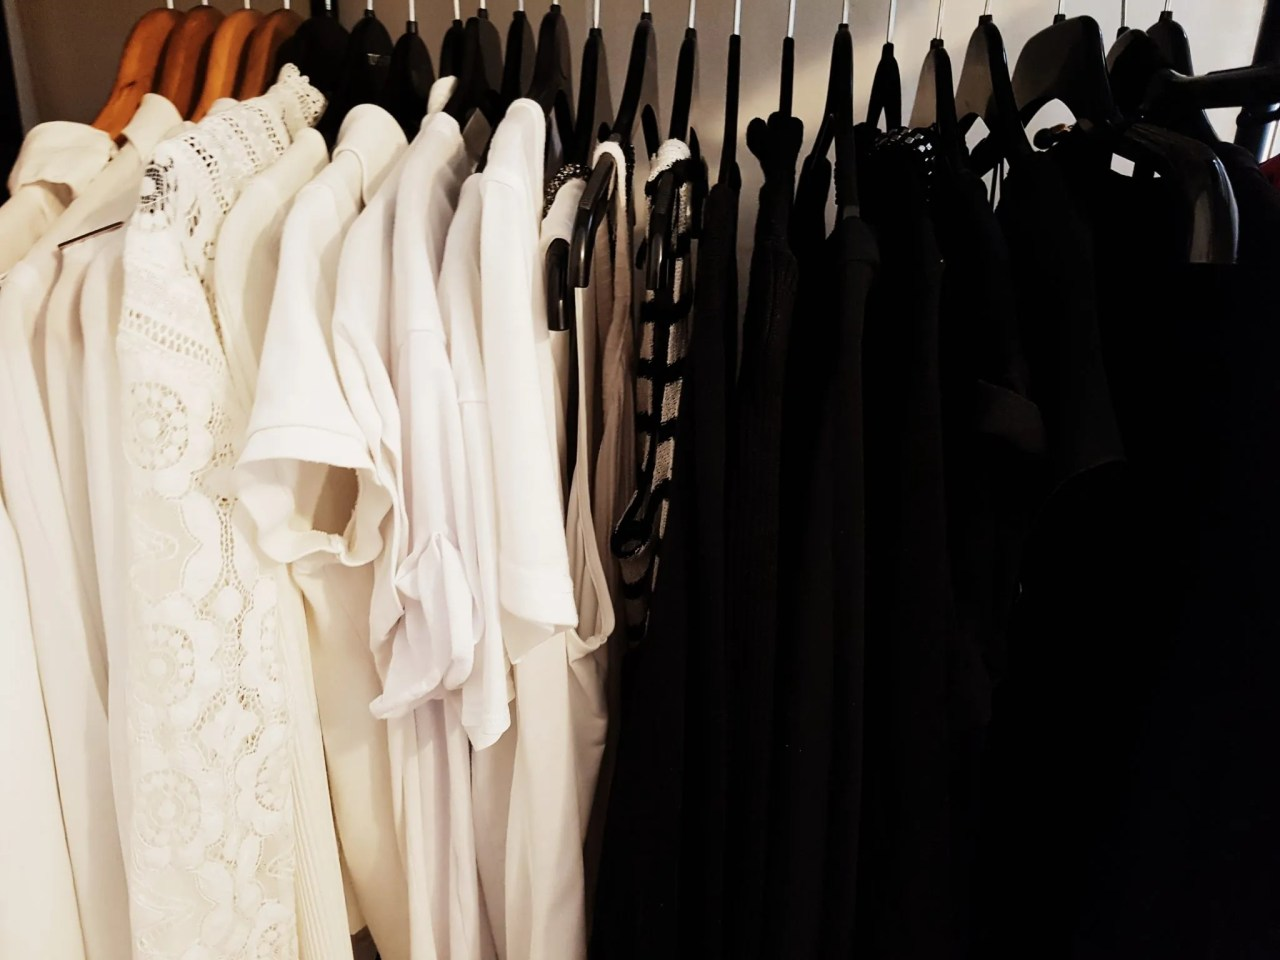 Organising Capsule Wardrobe - The Style of Laura